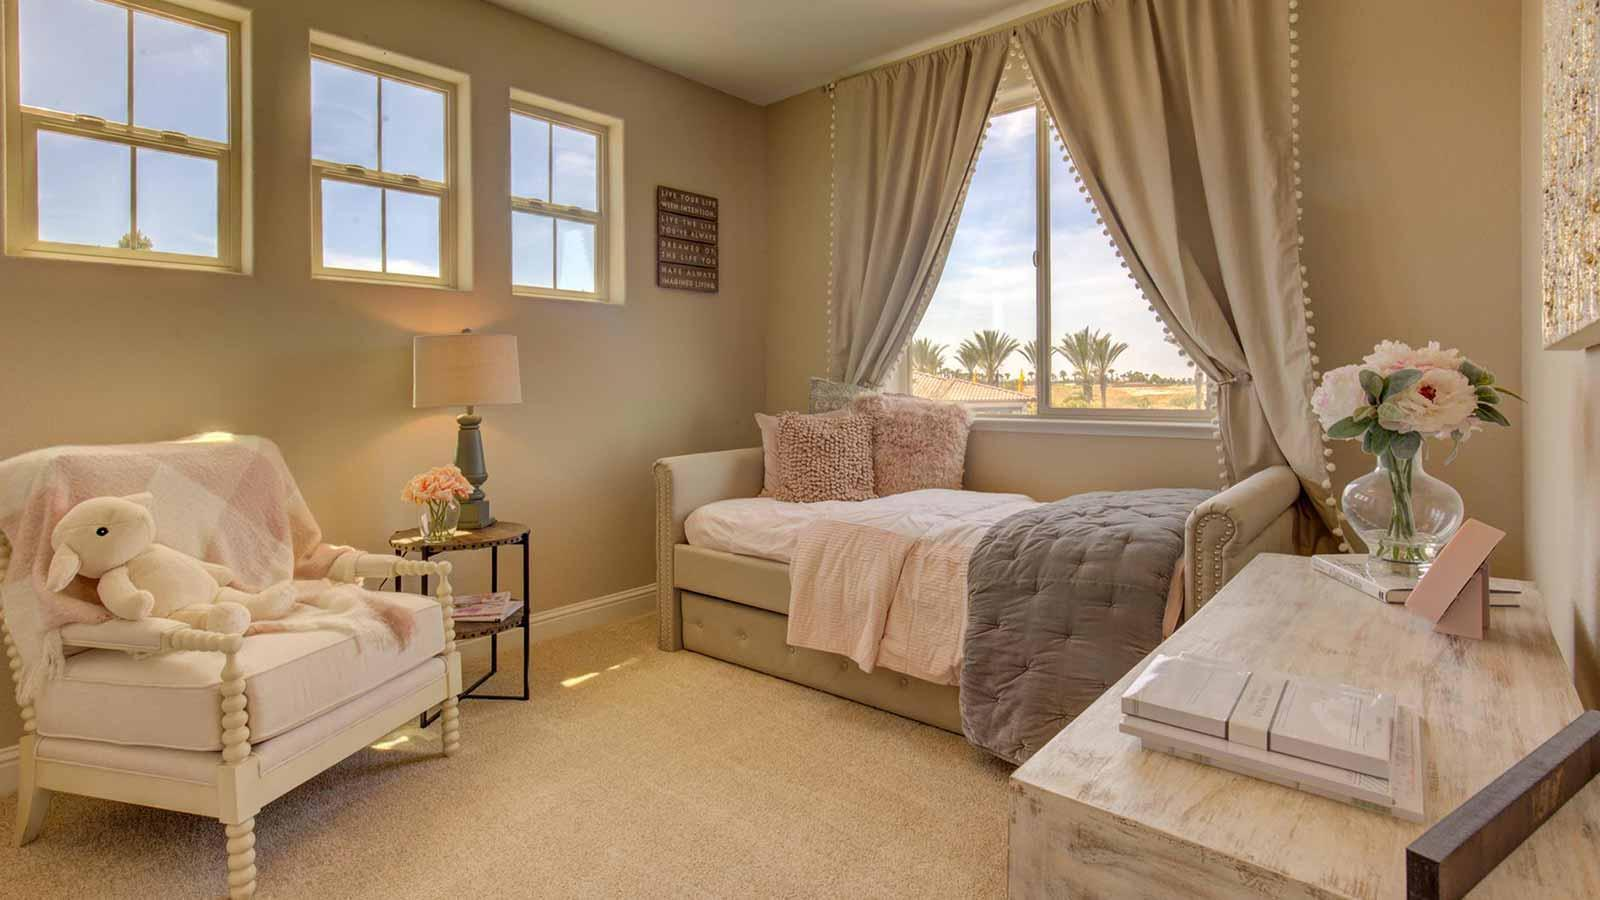 Bedroom featured in the Zoie By Granville Homes  in Fresno, CA